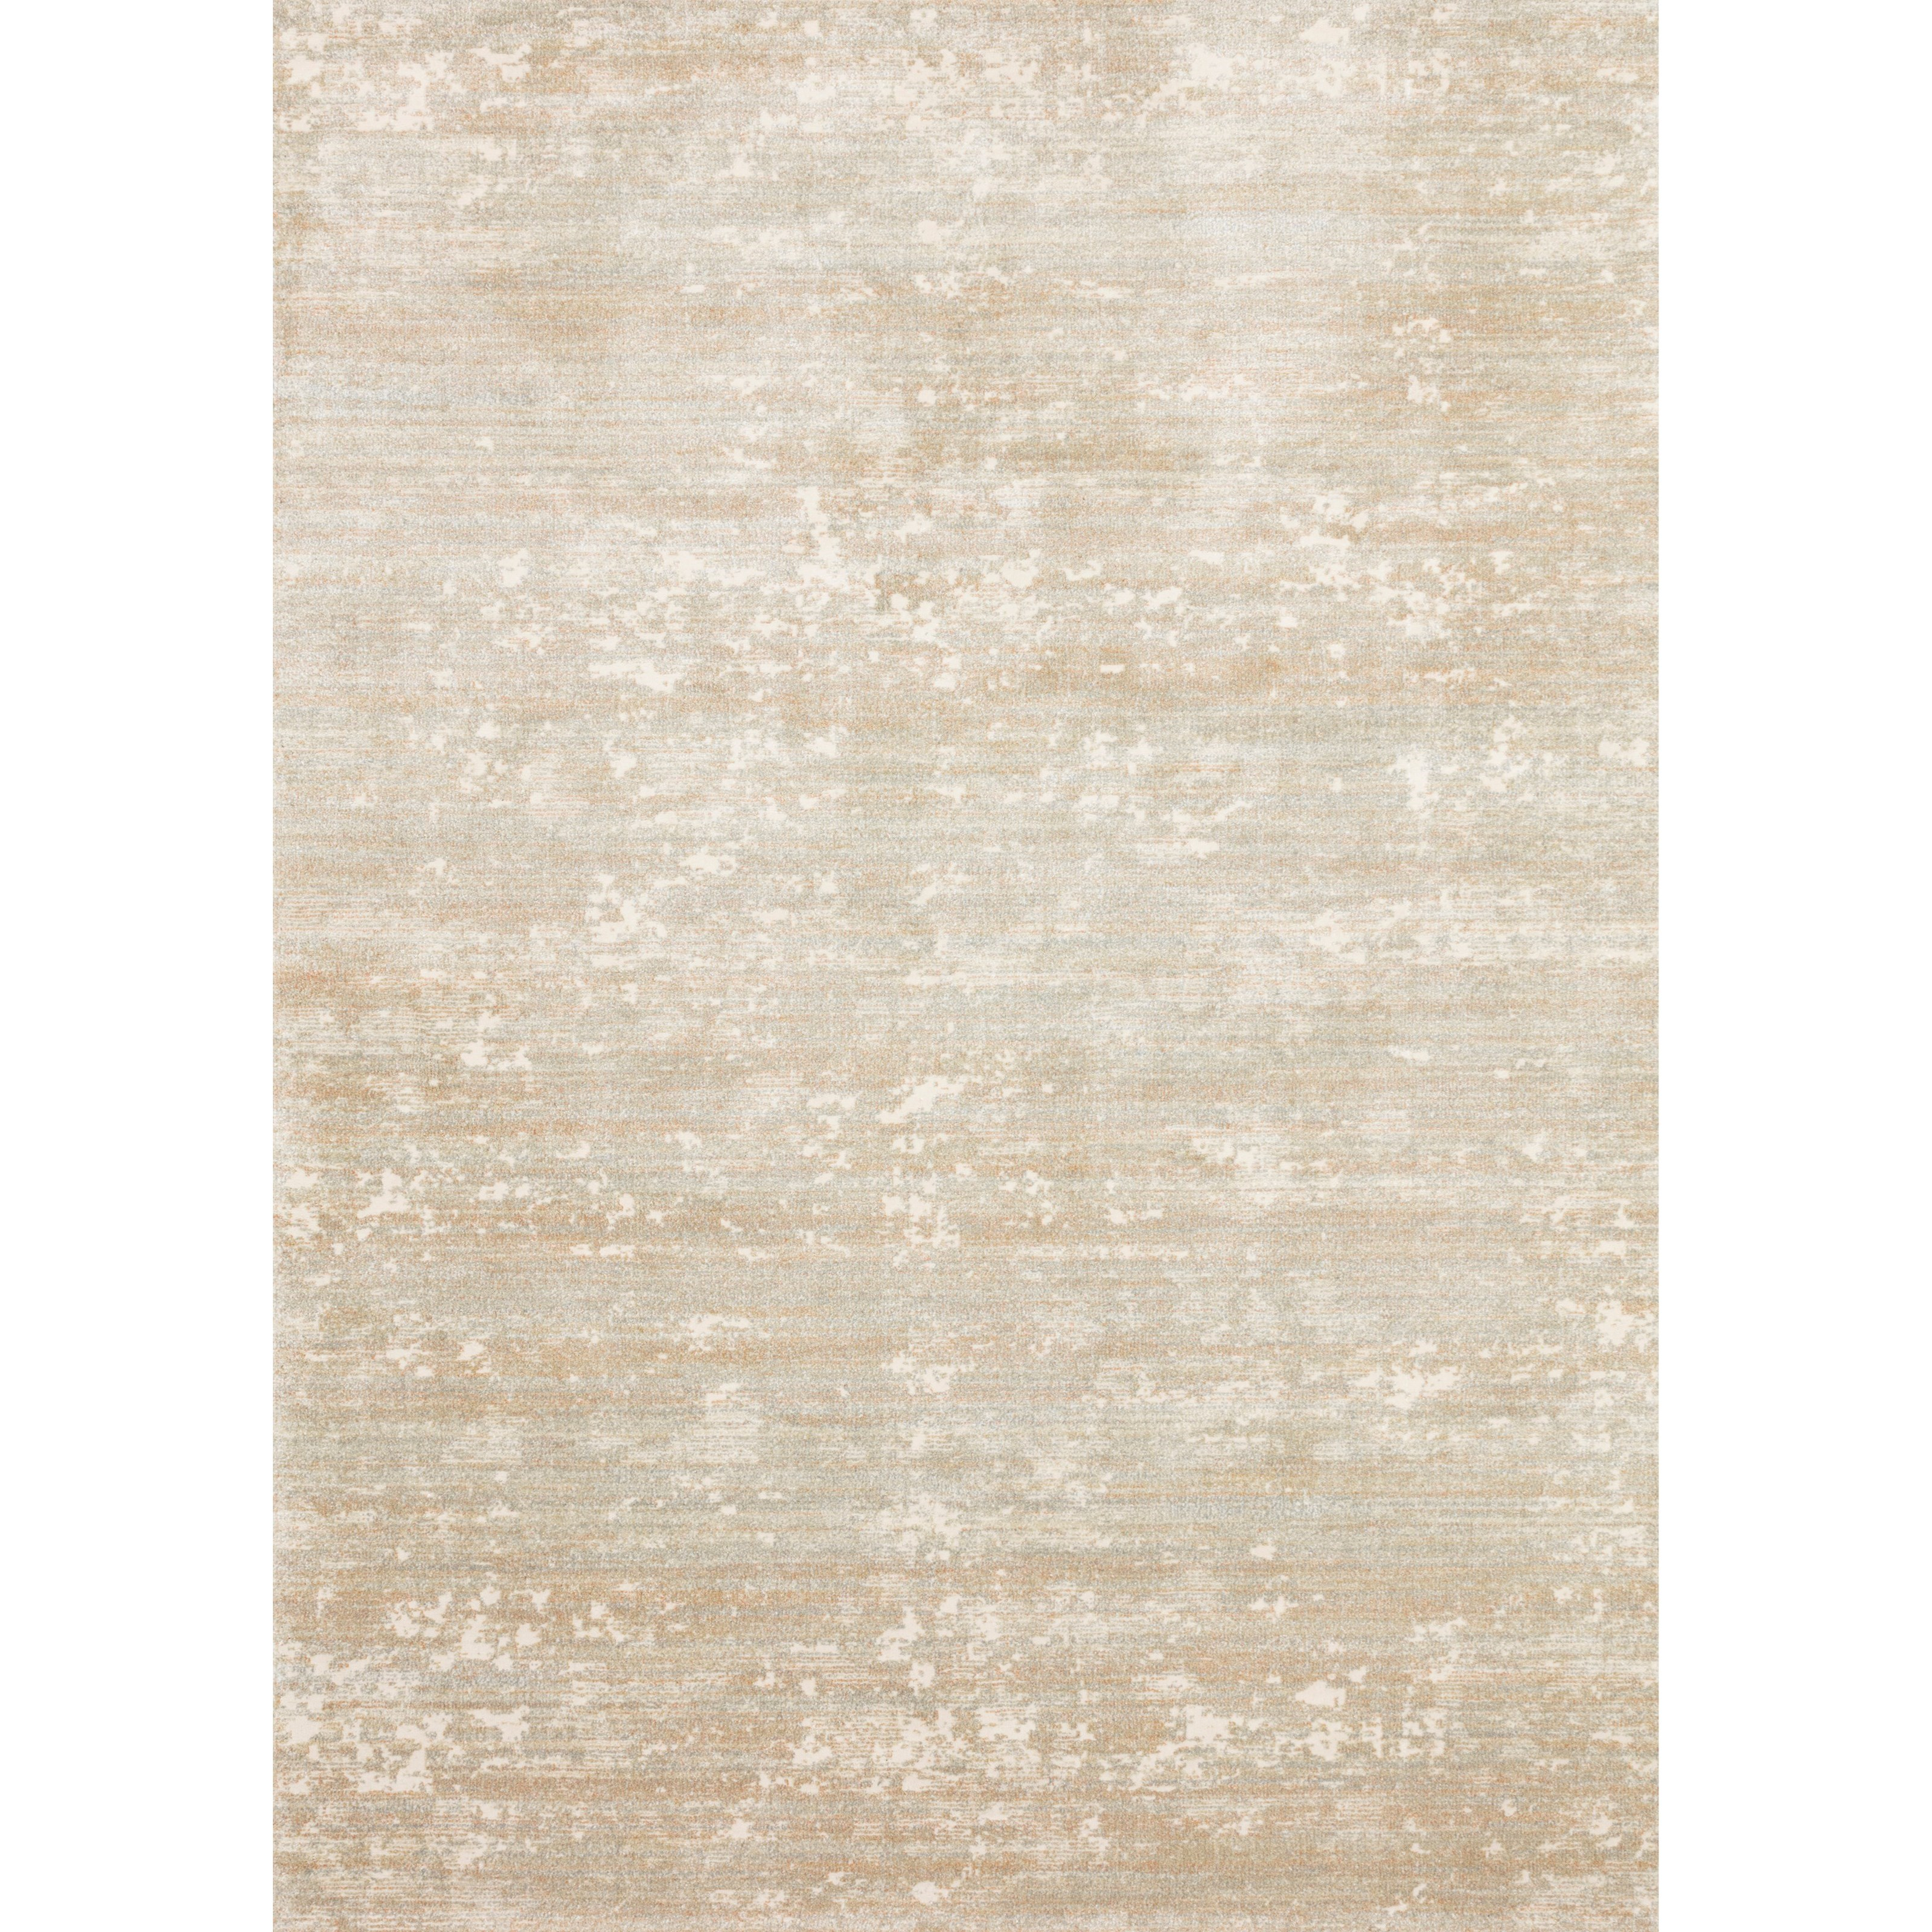 "Augustus 3'7"" x 5'7"" Sunset / Mist Rug by Loloi Rugs at Virginia Furniture Market"